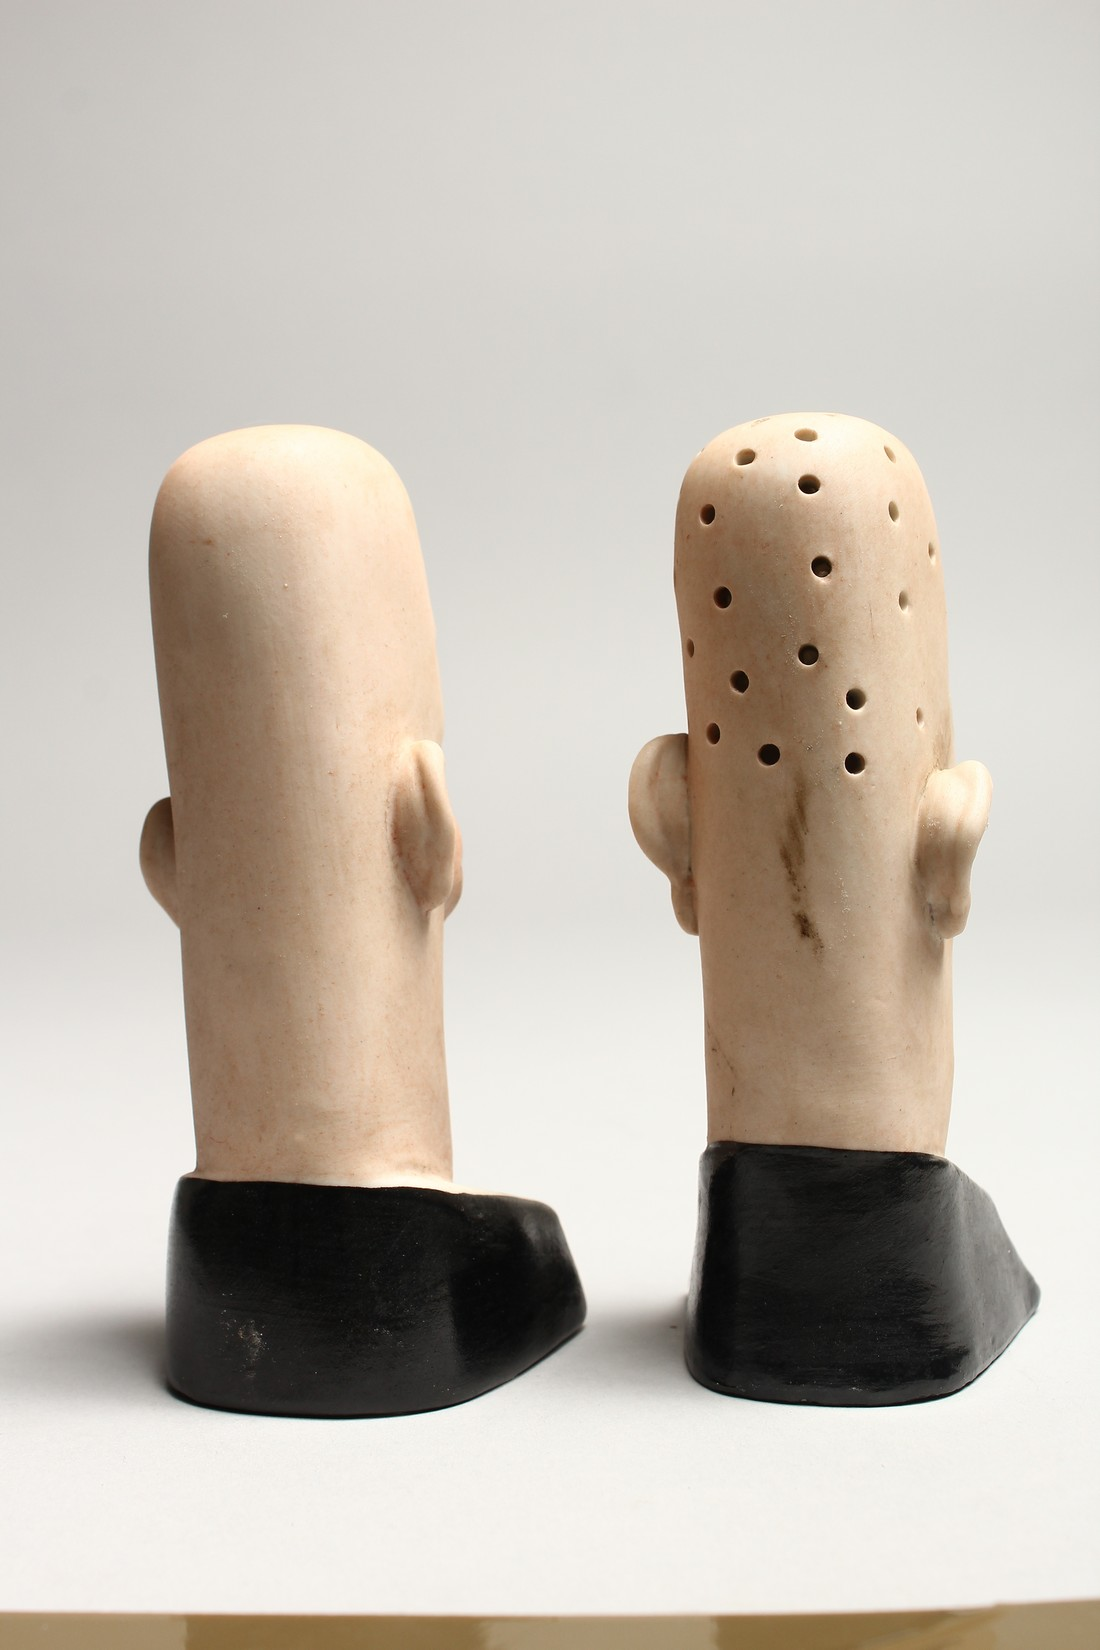 A PAIR OF POTTERY MEN'S HEADS ASHTRAYS. 5in high. - Image 3 of 5